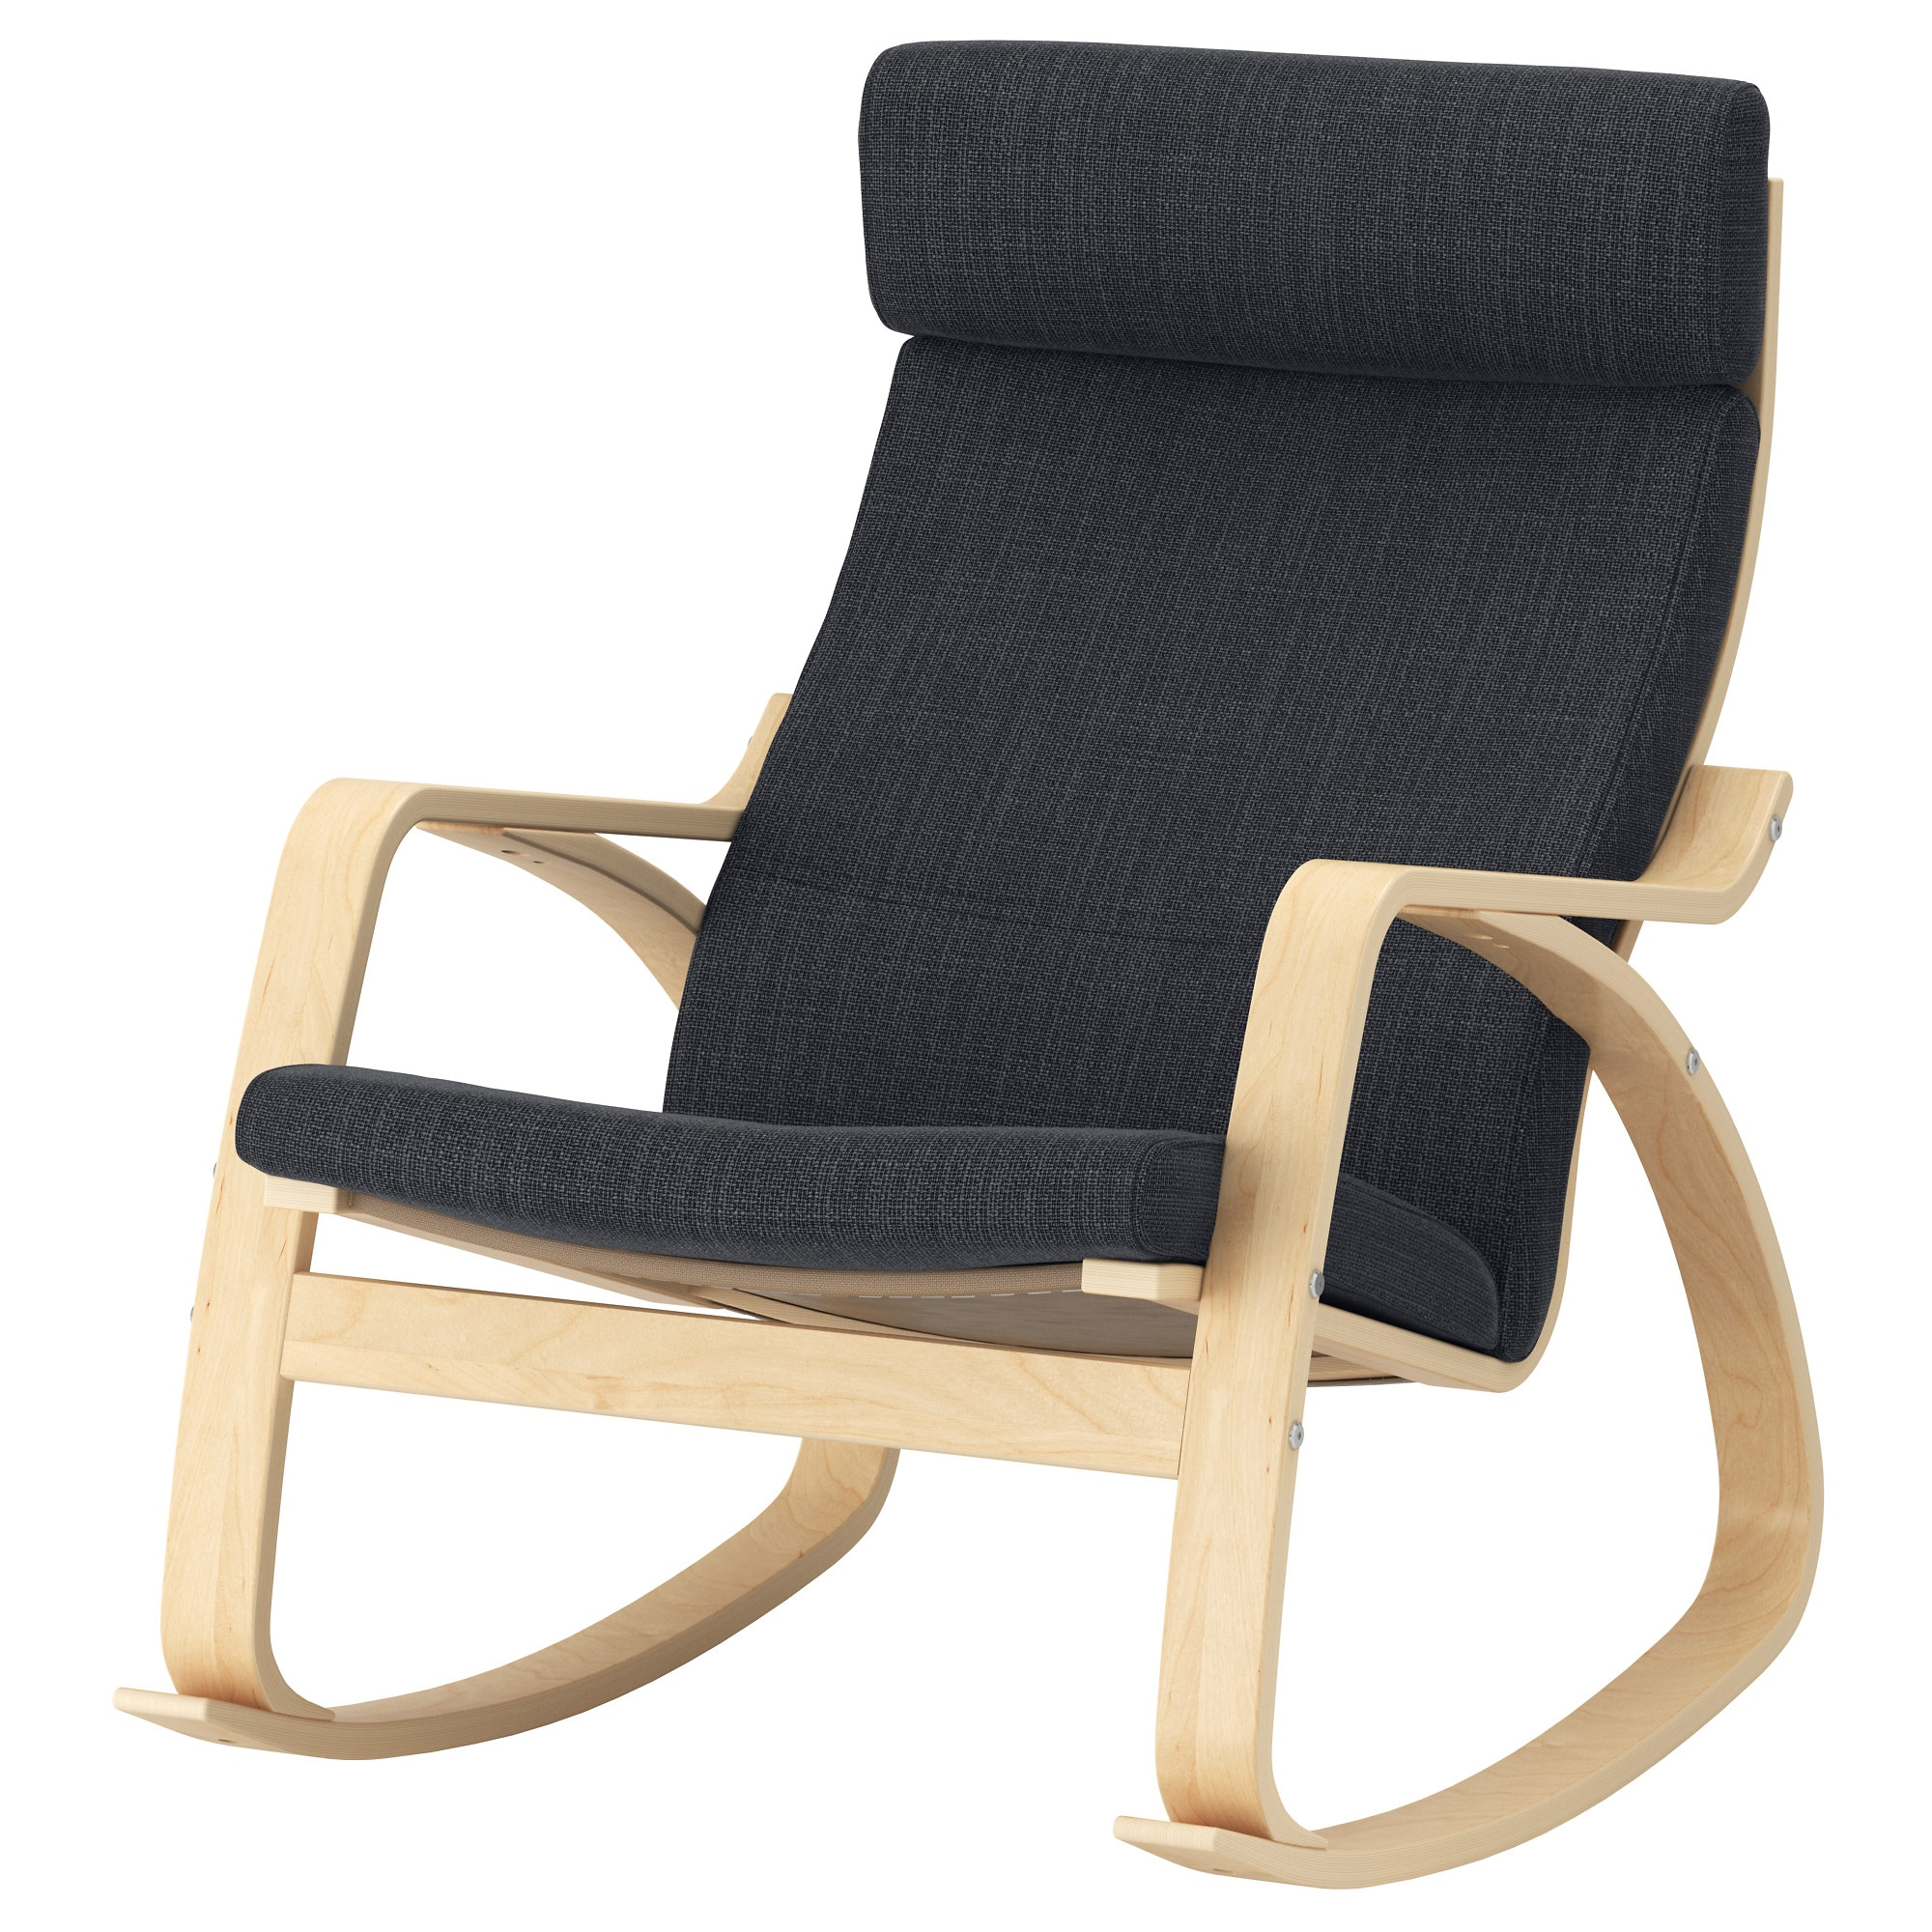 Delicieux POÄNG Rocking Chair   Vislanda Black/white   IKEA